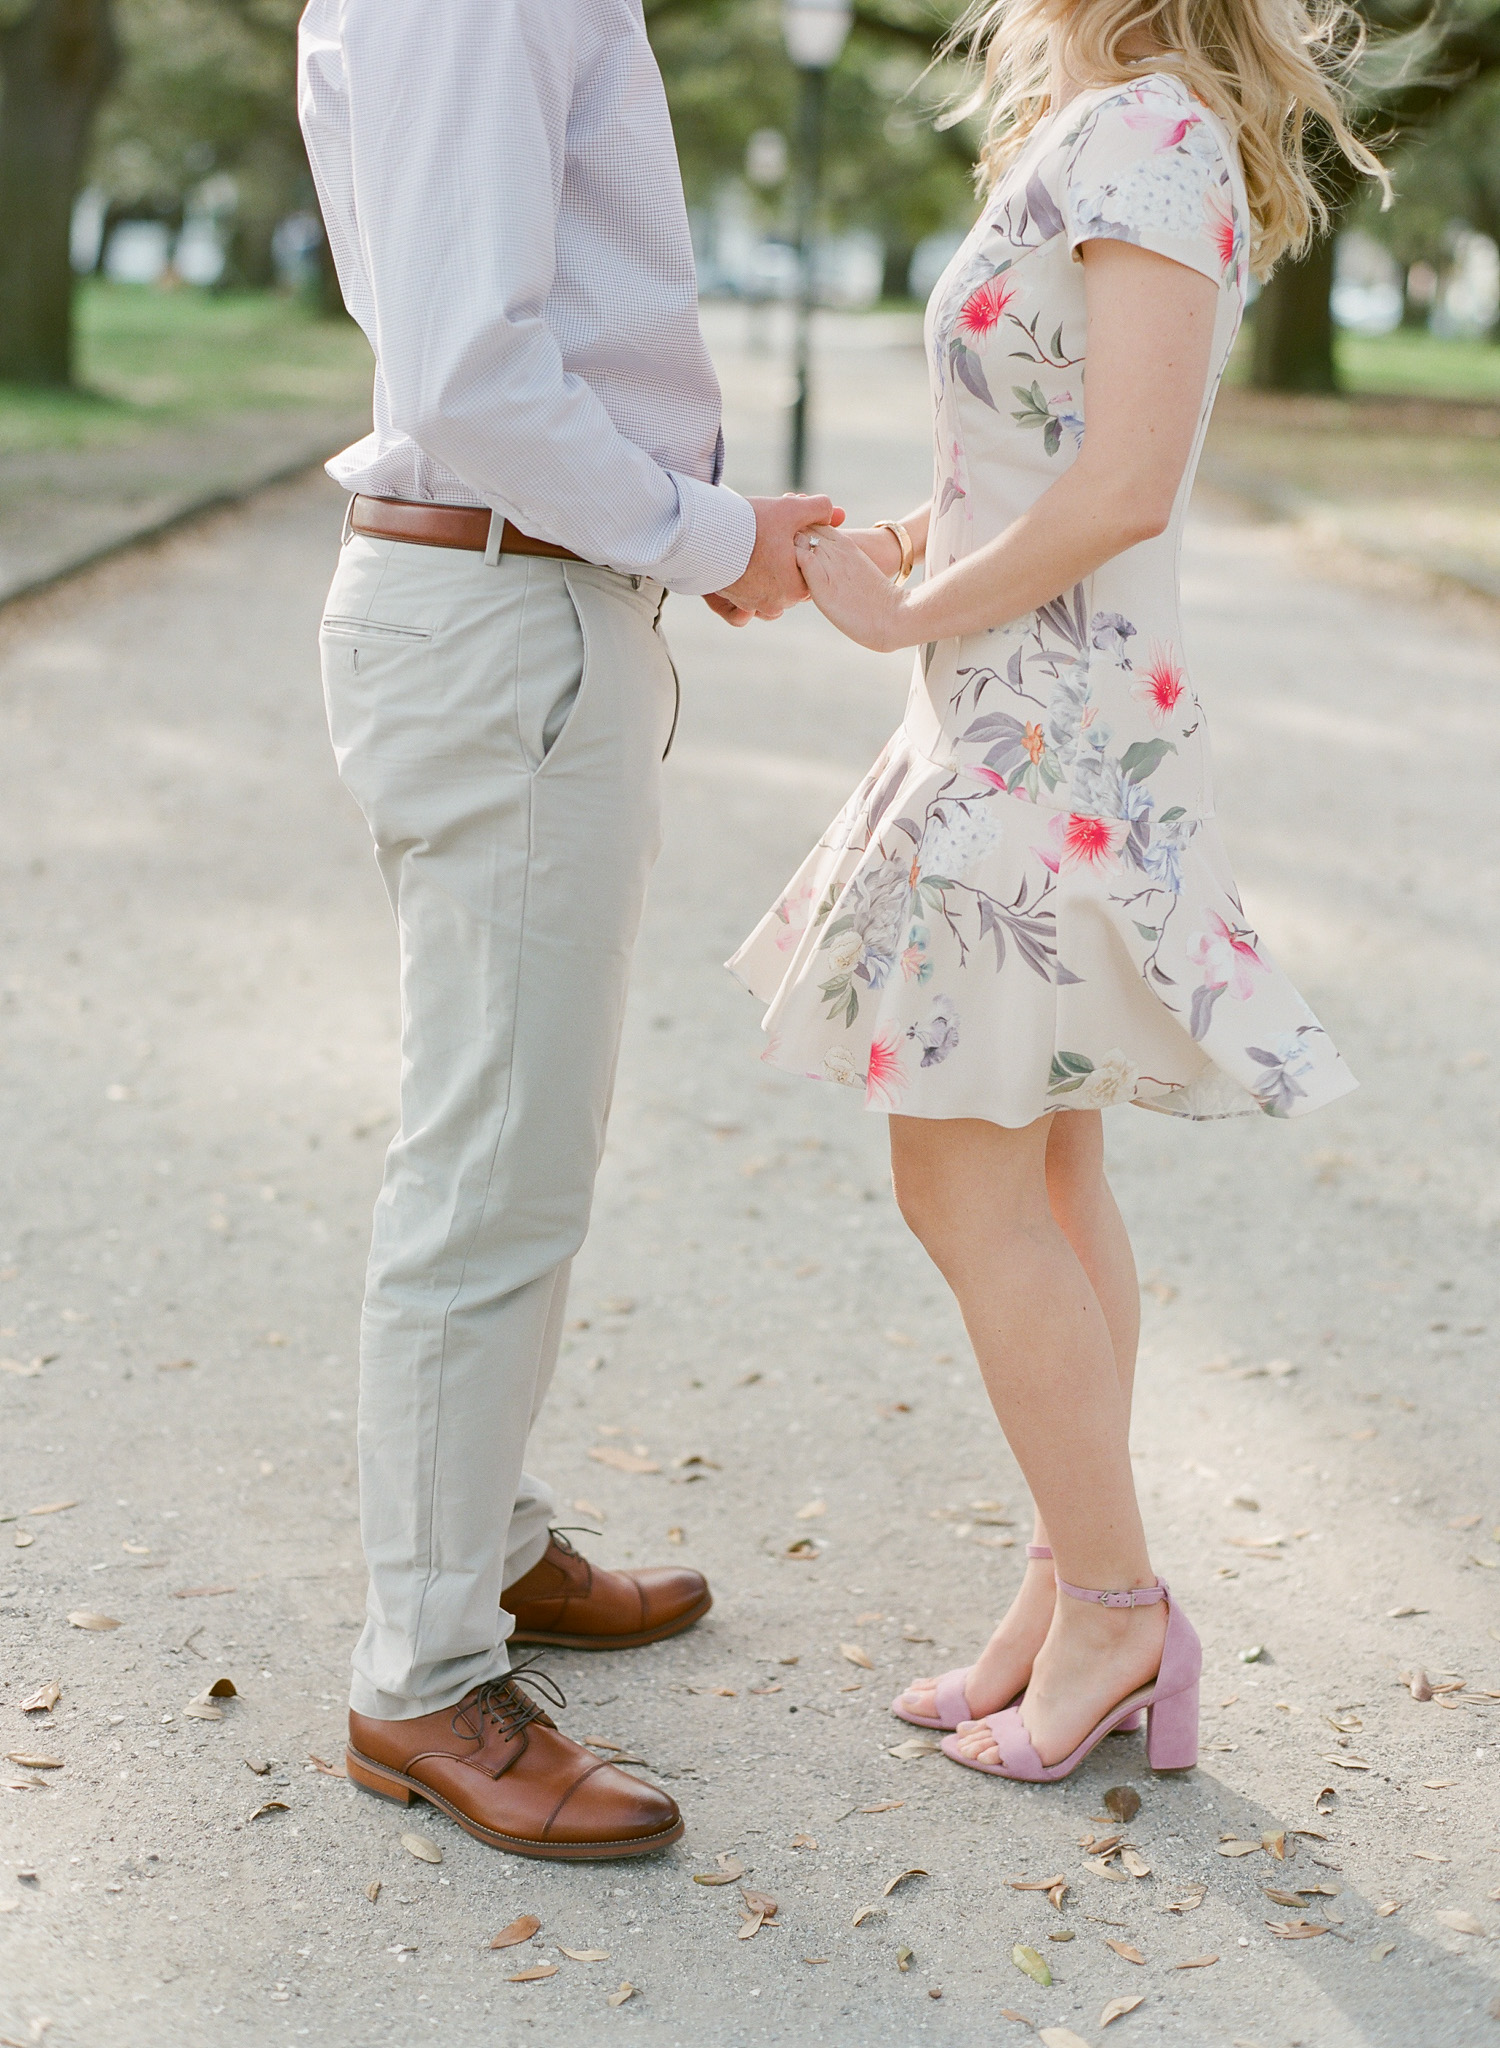 Charleston-Engagement-Session-Photos-69.jpg